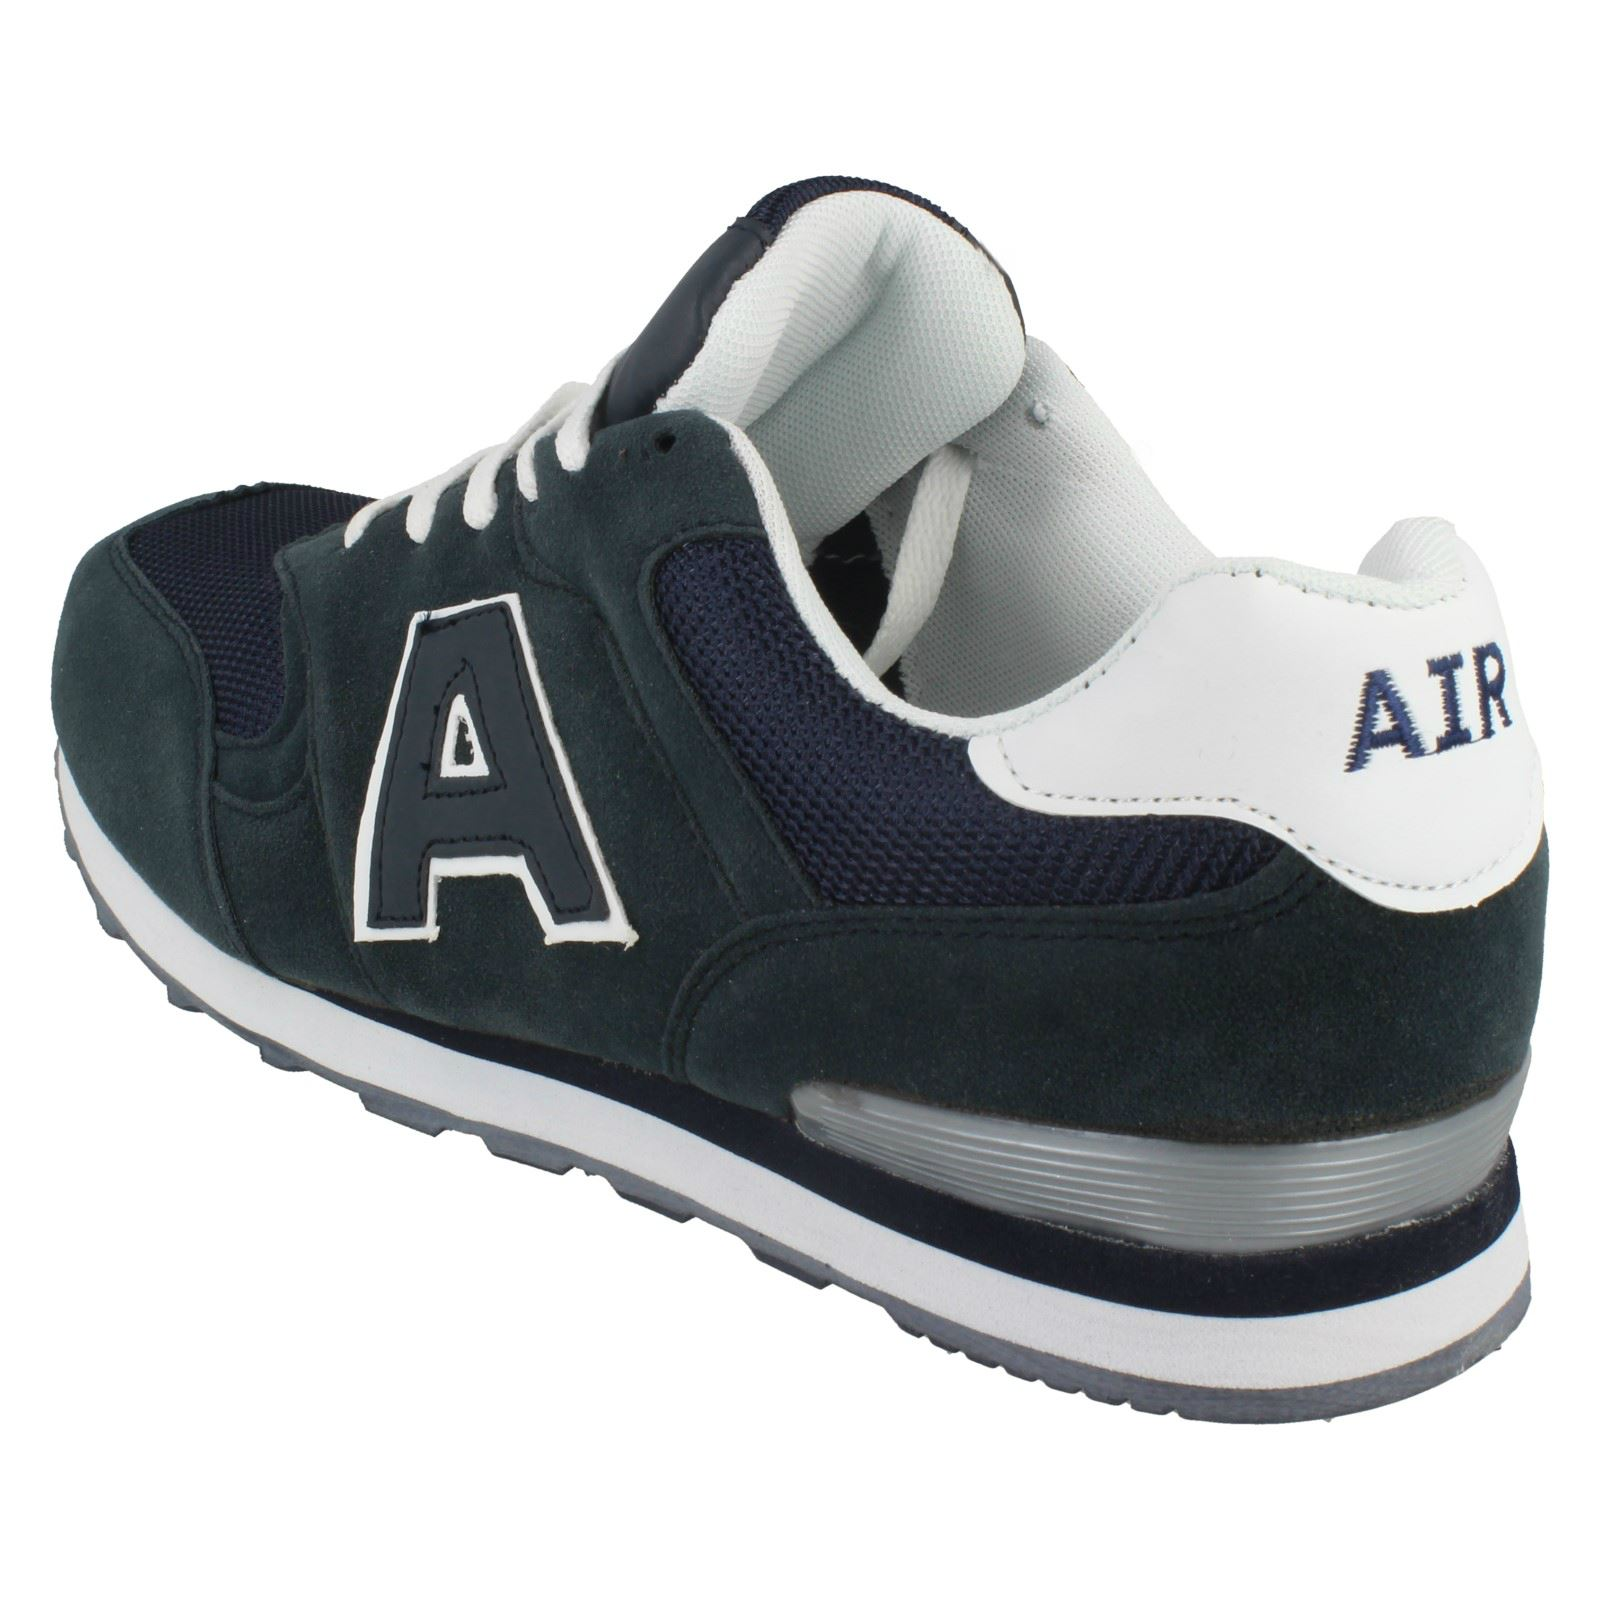 Mens Air Tech Lace Up Trainers /'Campus/'